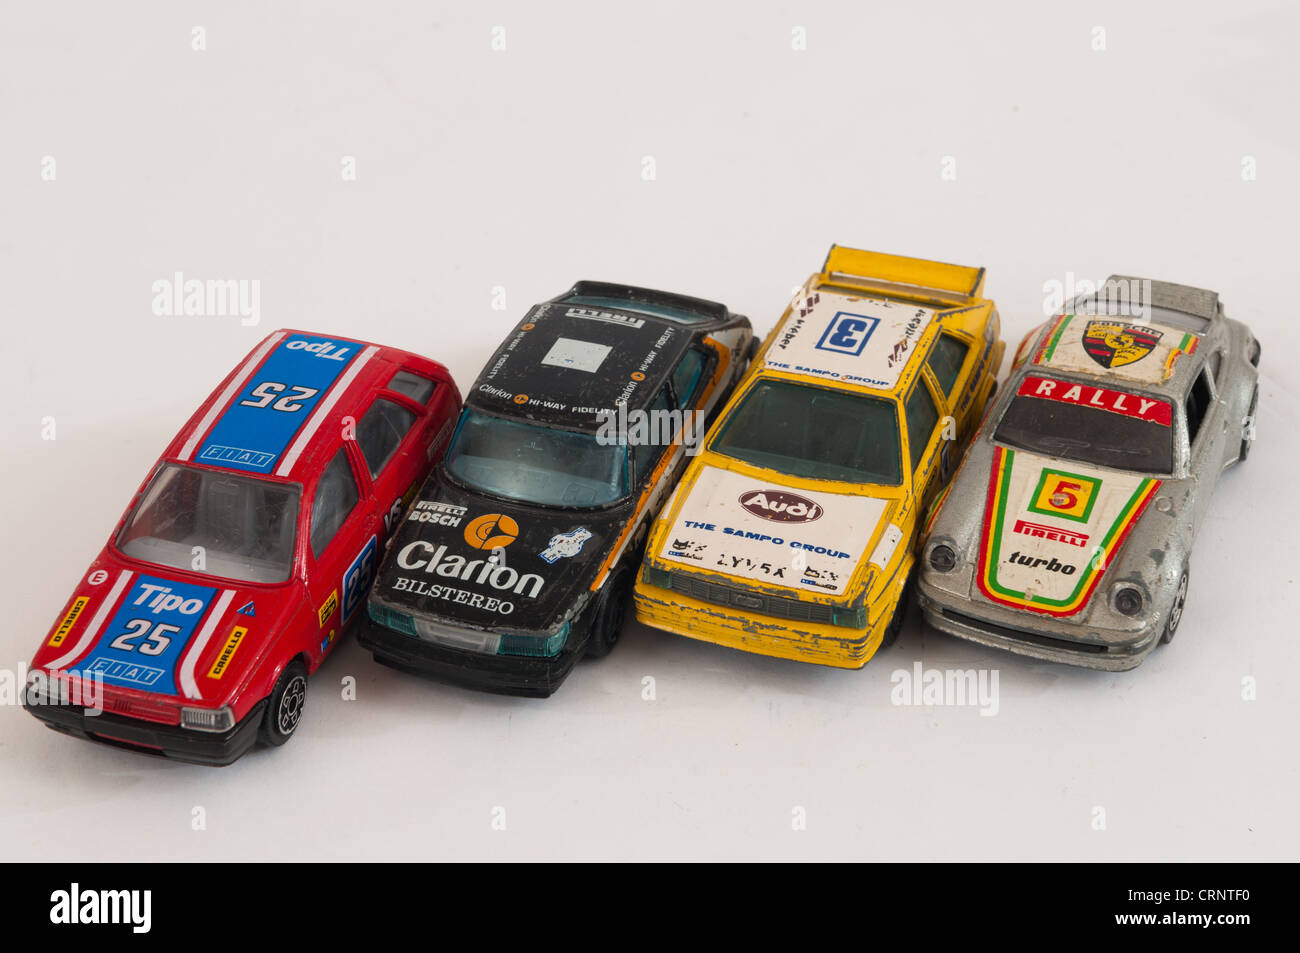 Collection of toy rally cars stock image